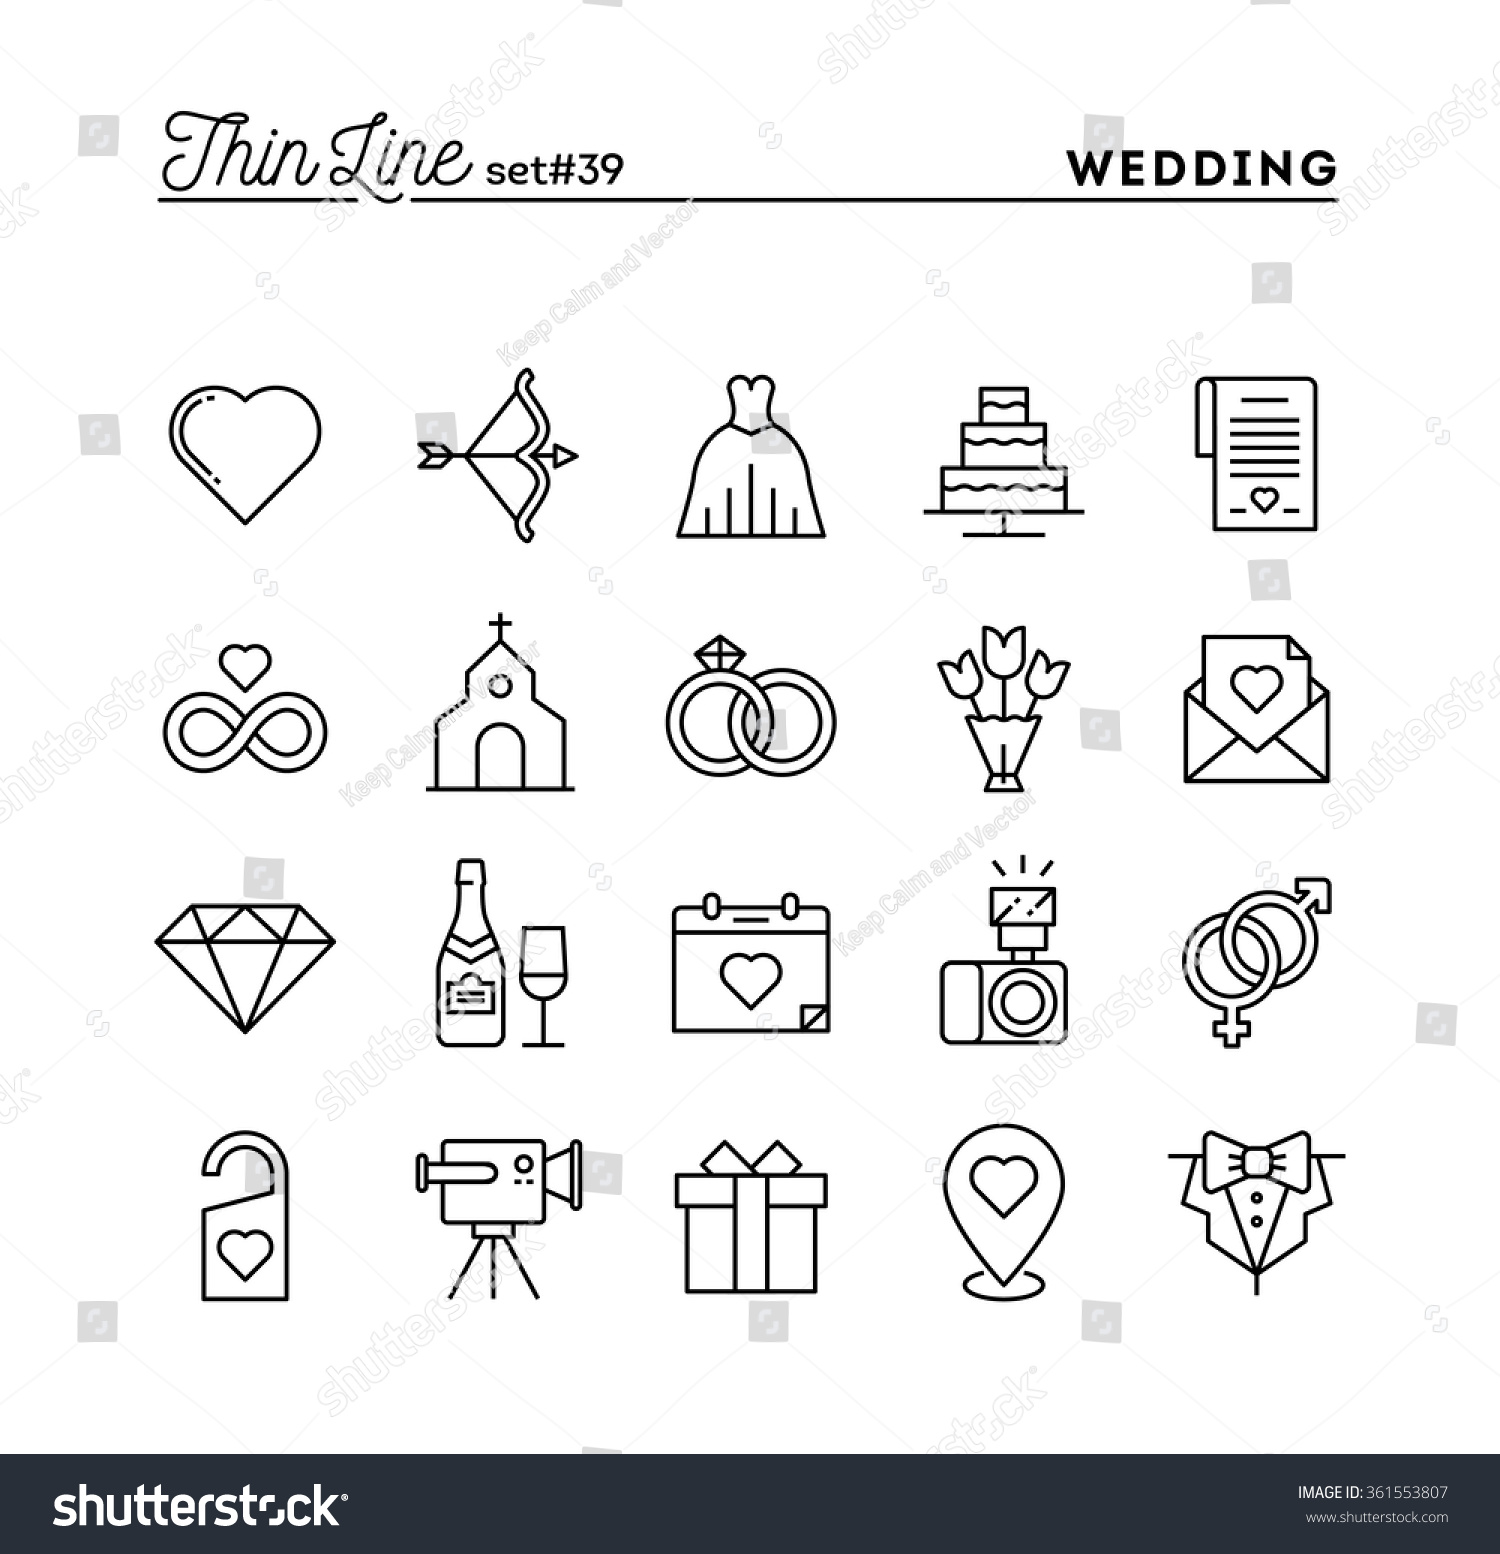 clipart wedding timeline free - photo #24